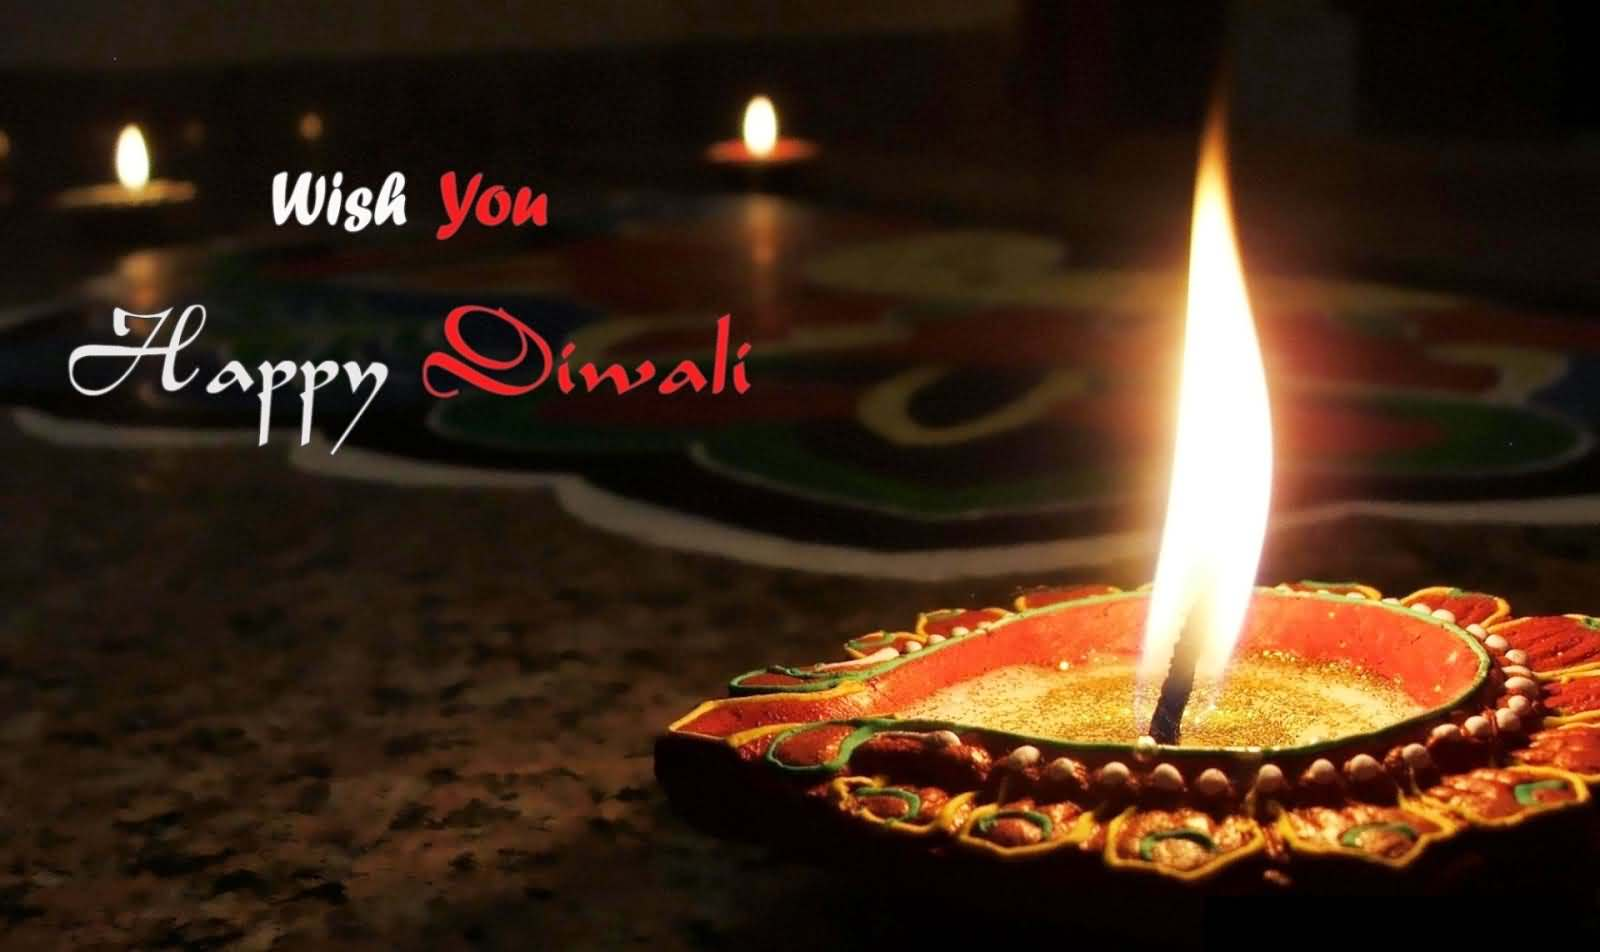 60 most amazing diwali greeting picture ideas wish you happy diwali diya picture kristyandbryce Images